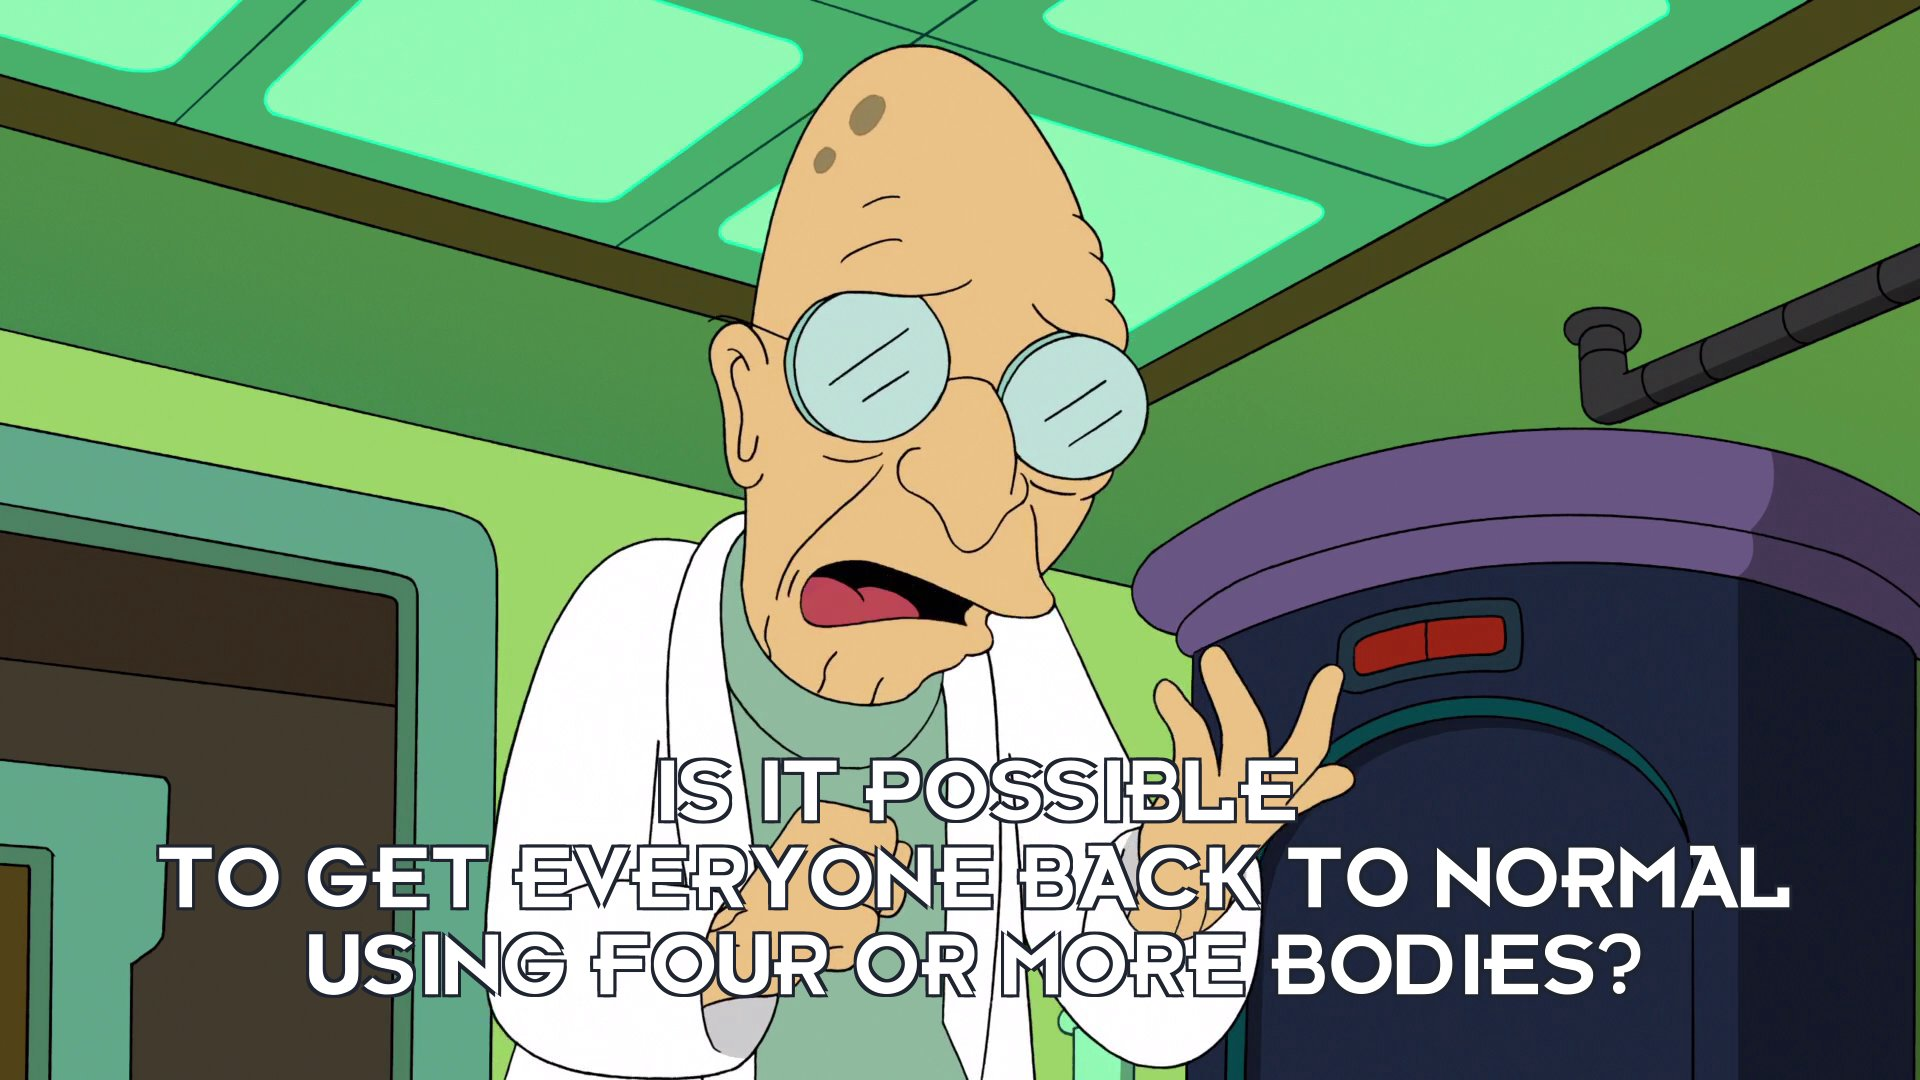 Amy Wong [in Prof Hubert J Farnsworth's body]: Is it possible to get everyone back to normal using four or more bodies?